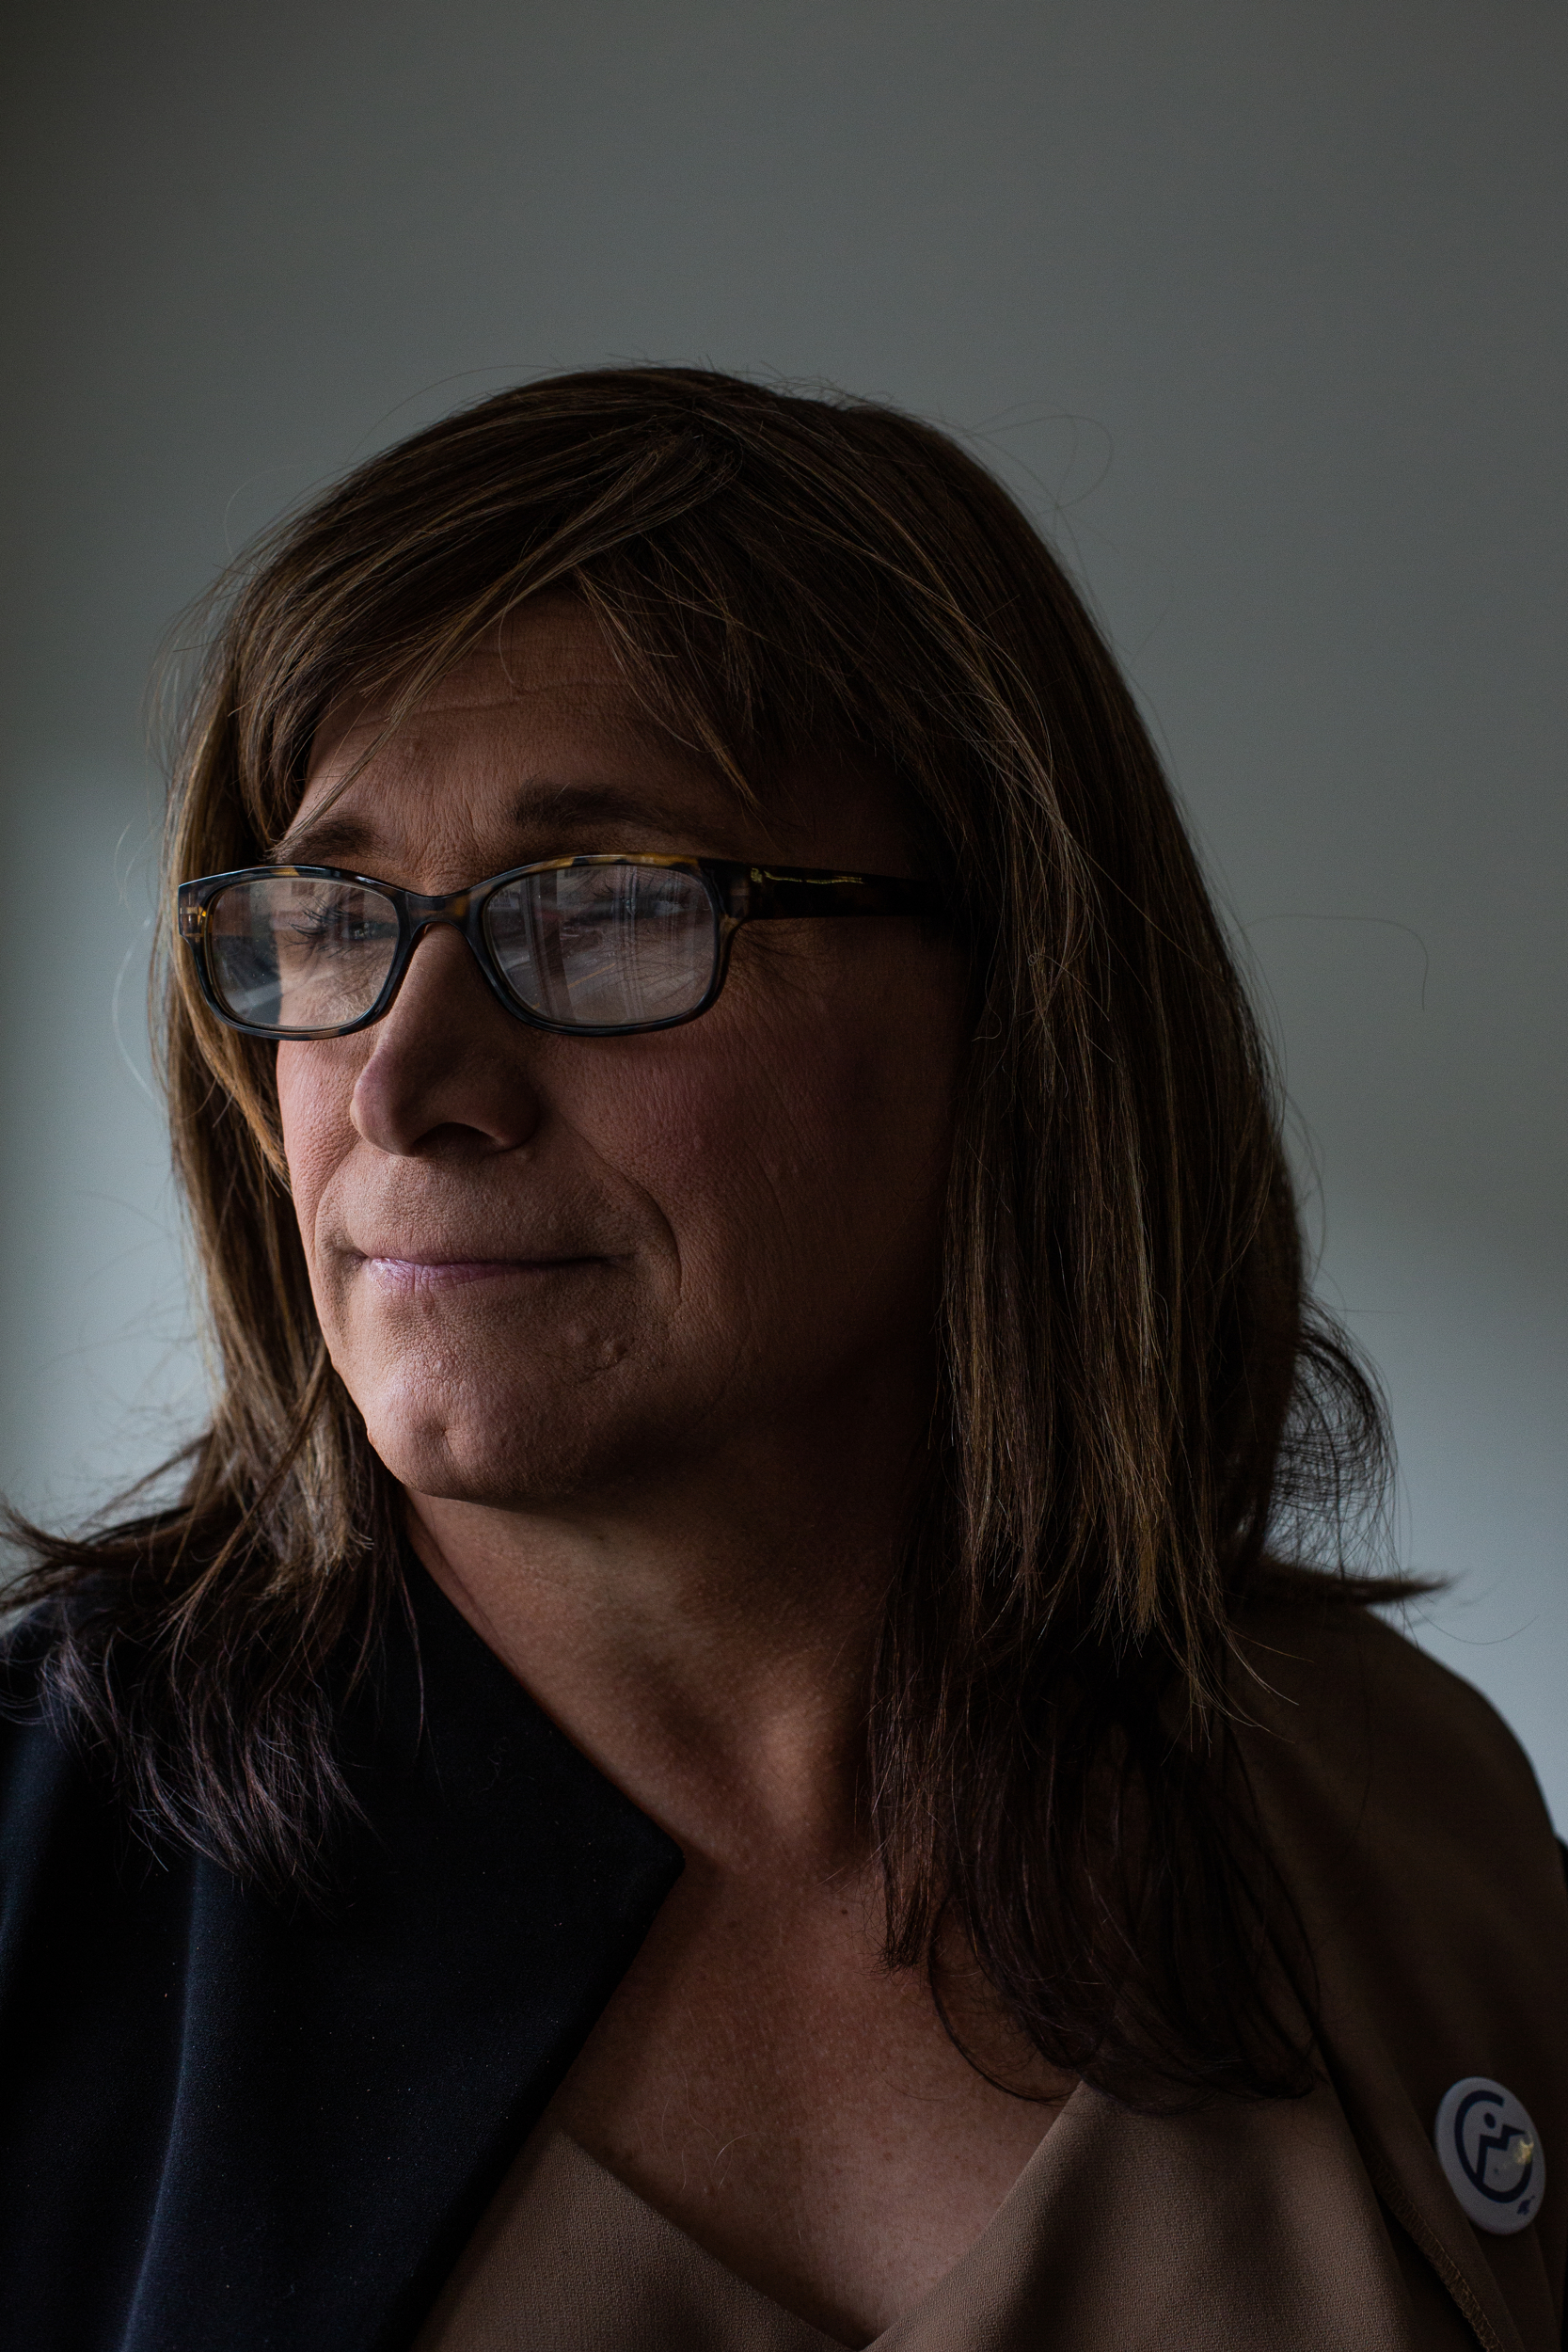 Christine Hallquist, a Democrat from Vermont, became the first transgender candidate to be nominated for a governorship by a major party after beating three candidates in Vermont's primary. She and her campaign team worked throughout the northern part of the state on Monday, September 24, 2018.JOHN TULLY For The New York Times